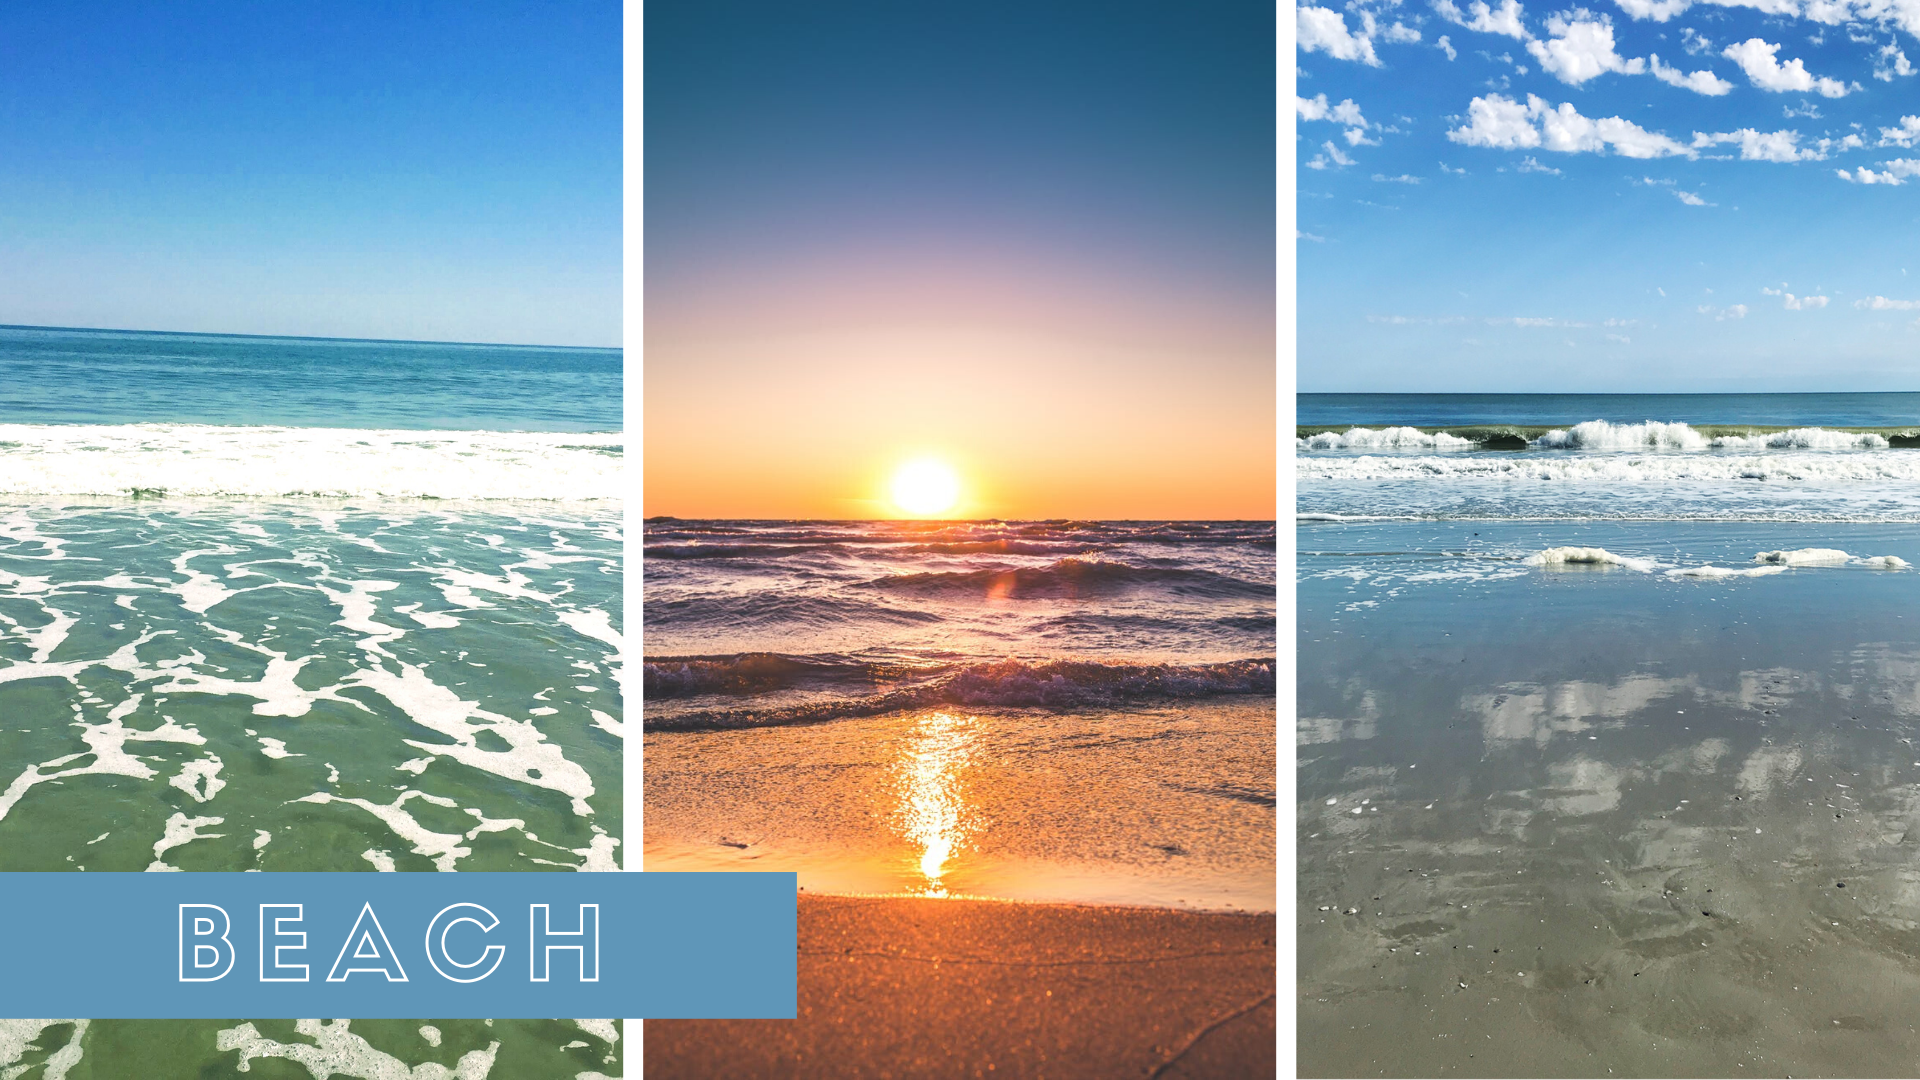 Beach collage feature a sunrise and waves